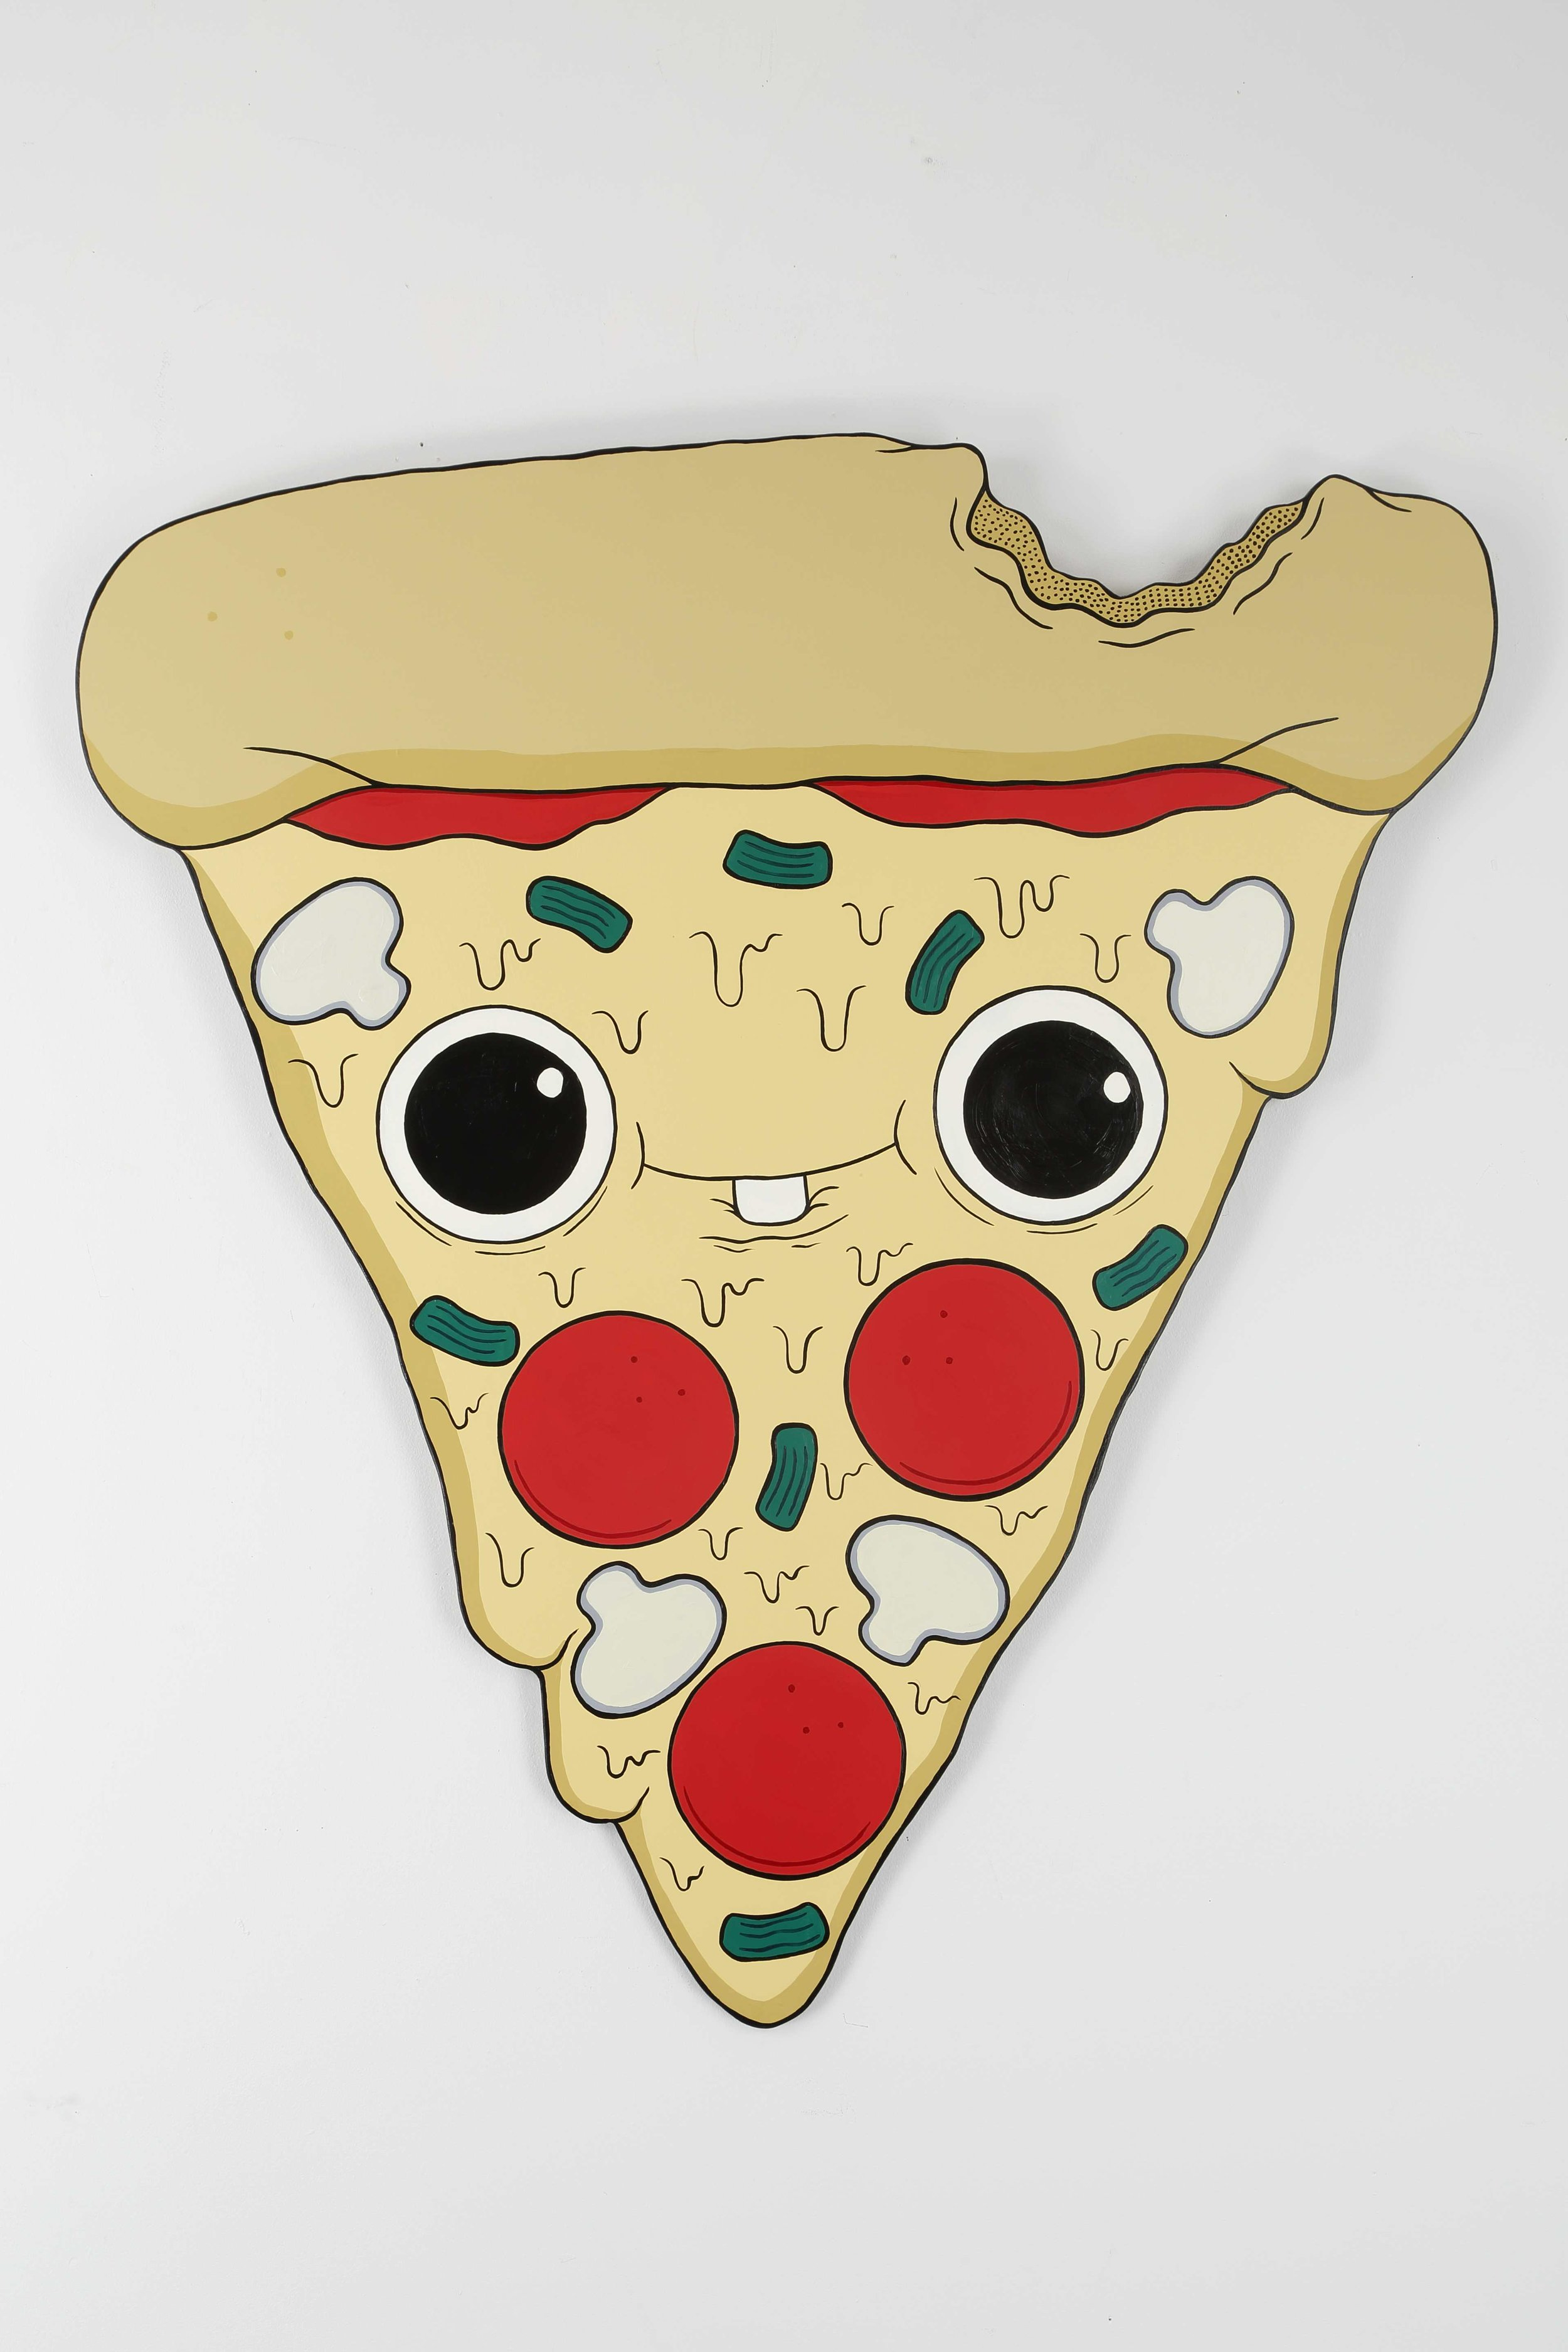 """""""Take Another Little Pizza My Heart Now, Baby"""" by Shae Goodlett,Acrylic on Plywood, 3ft x 4.5ft, 2017 SOLD"""